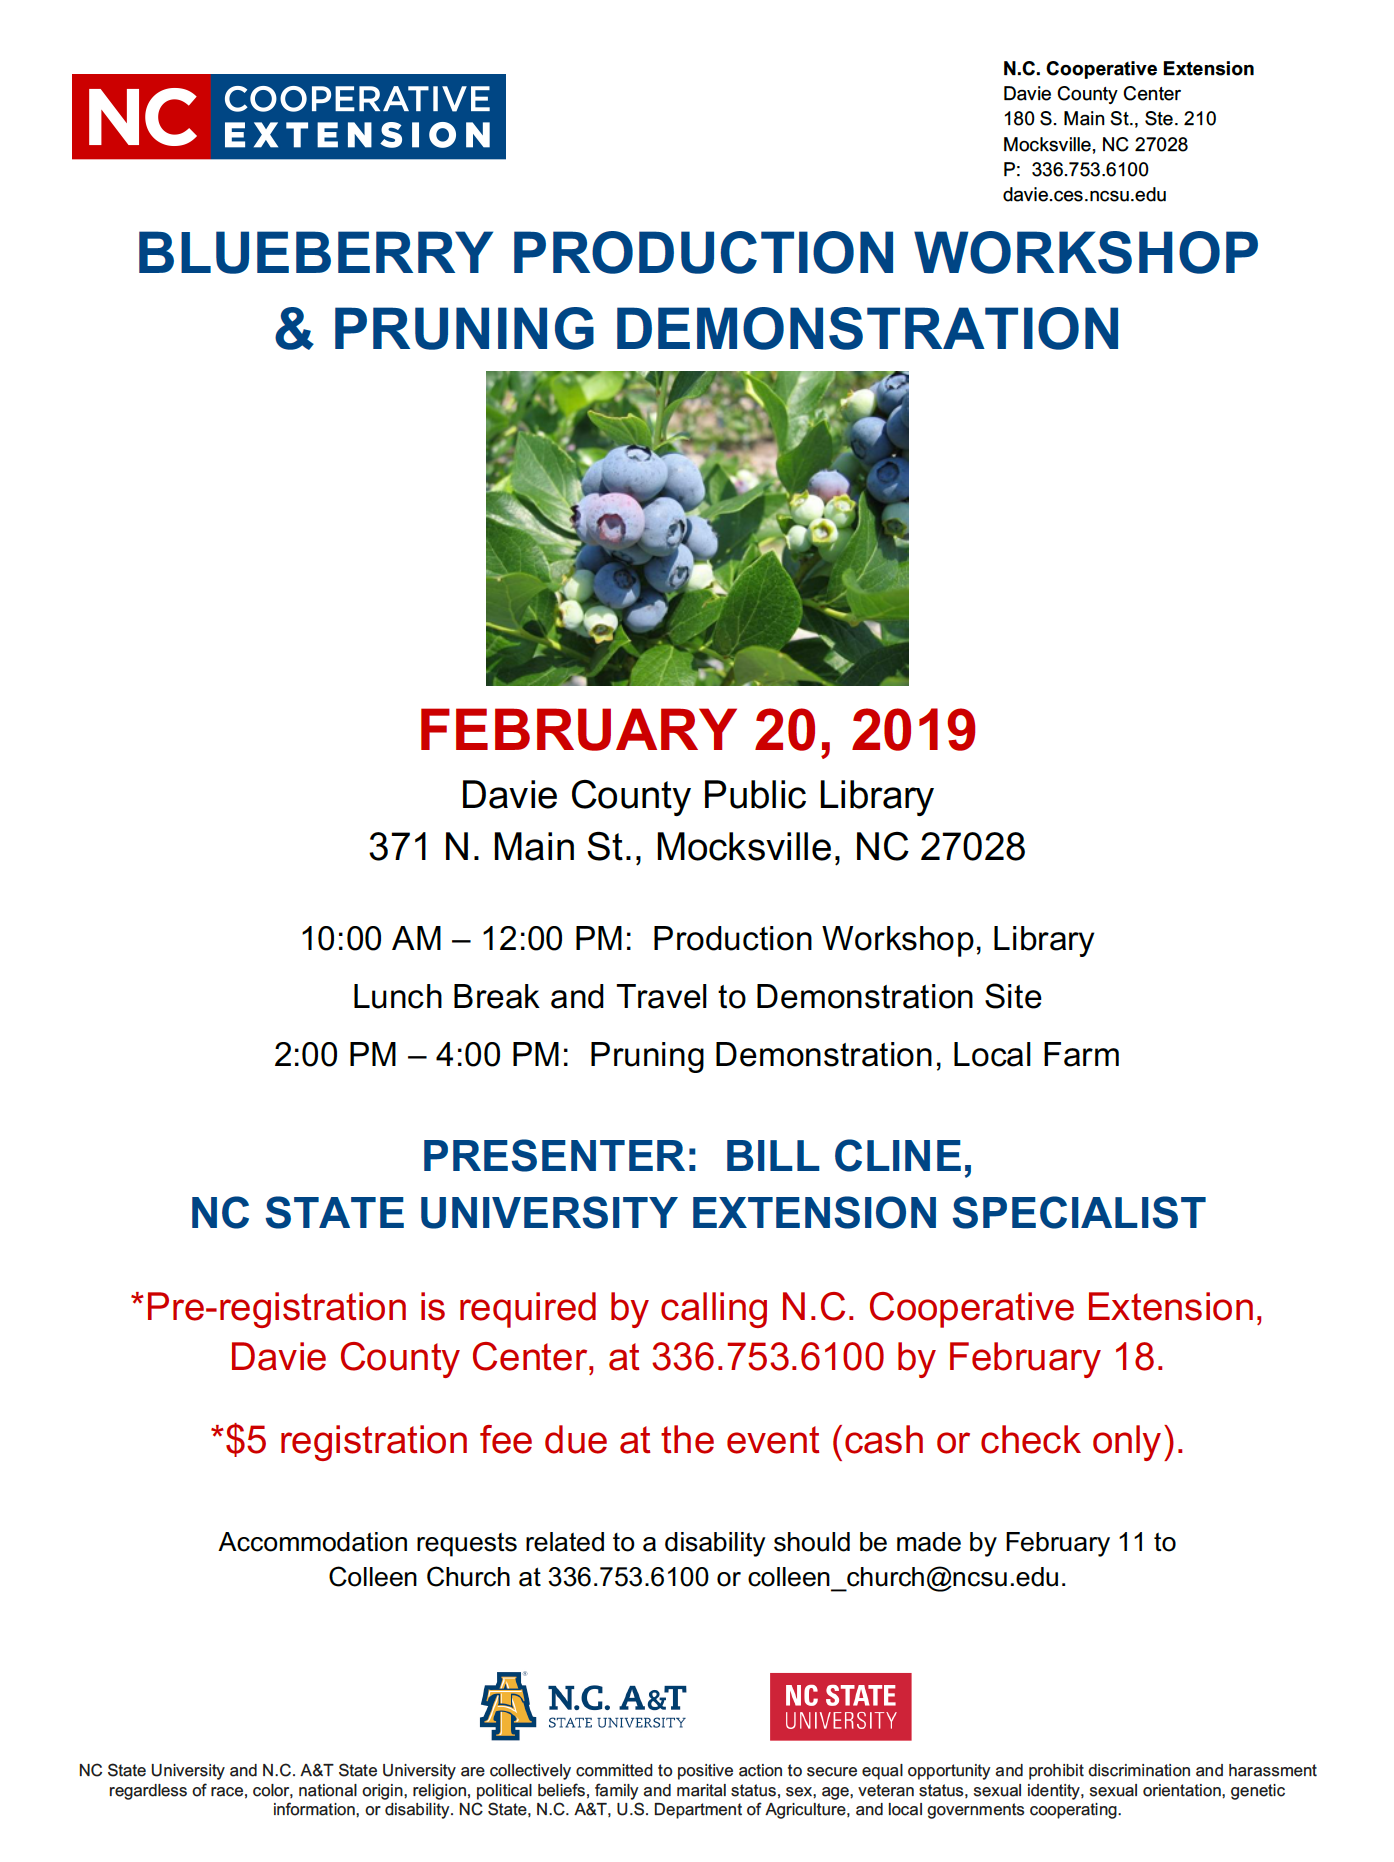 Screen shot of the PDF For the Blueberry Production Workshop and Pruning Demonstration on Wednesday, February 20th starting at 10 a.m. to noon with a lunch break and the demo at 2 p.m. The meeting will take place first at the Davie County Library at 371 N. Main St. Mocksville 27028. A five dollar fee for registration can be paid in cash or check at the event. To register call NC Cooperative Extension, Davie County Center at 336-753-6100 bu Monday February 18th.